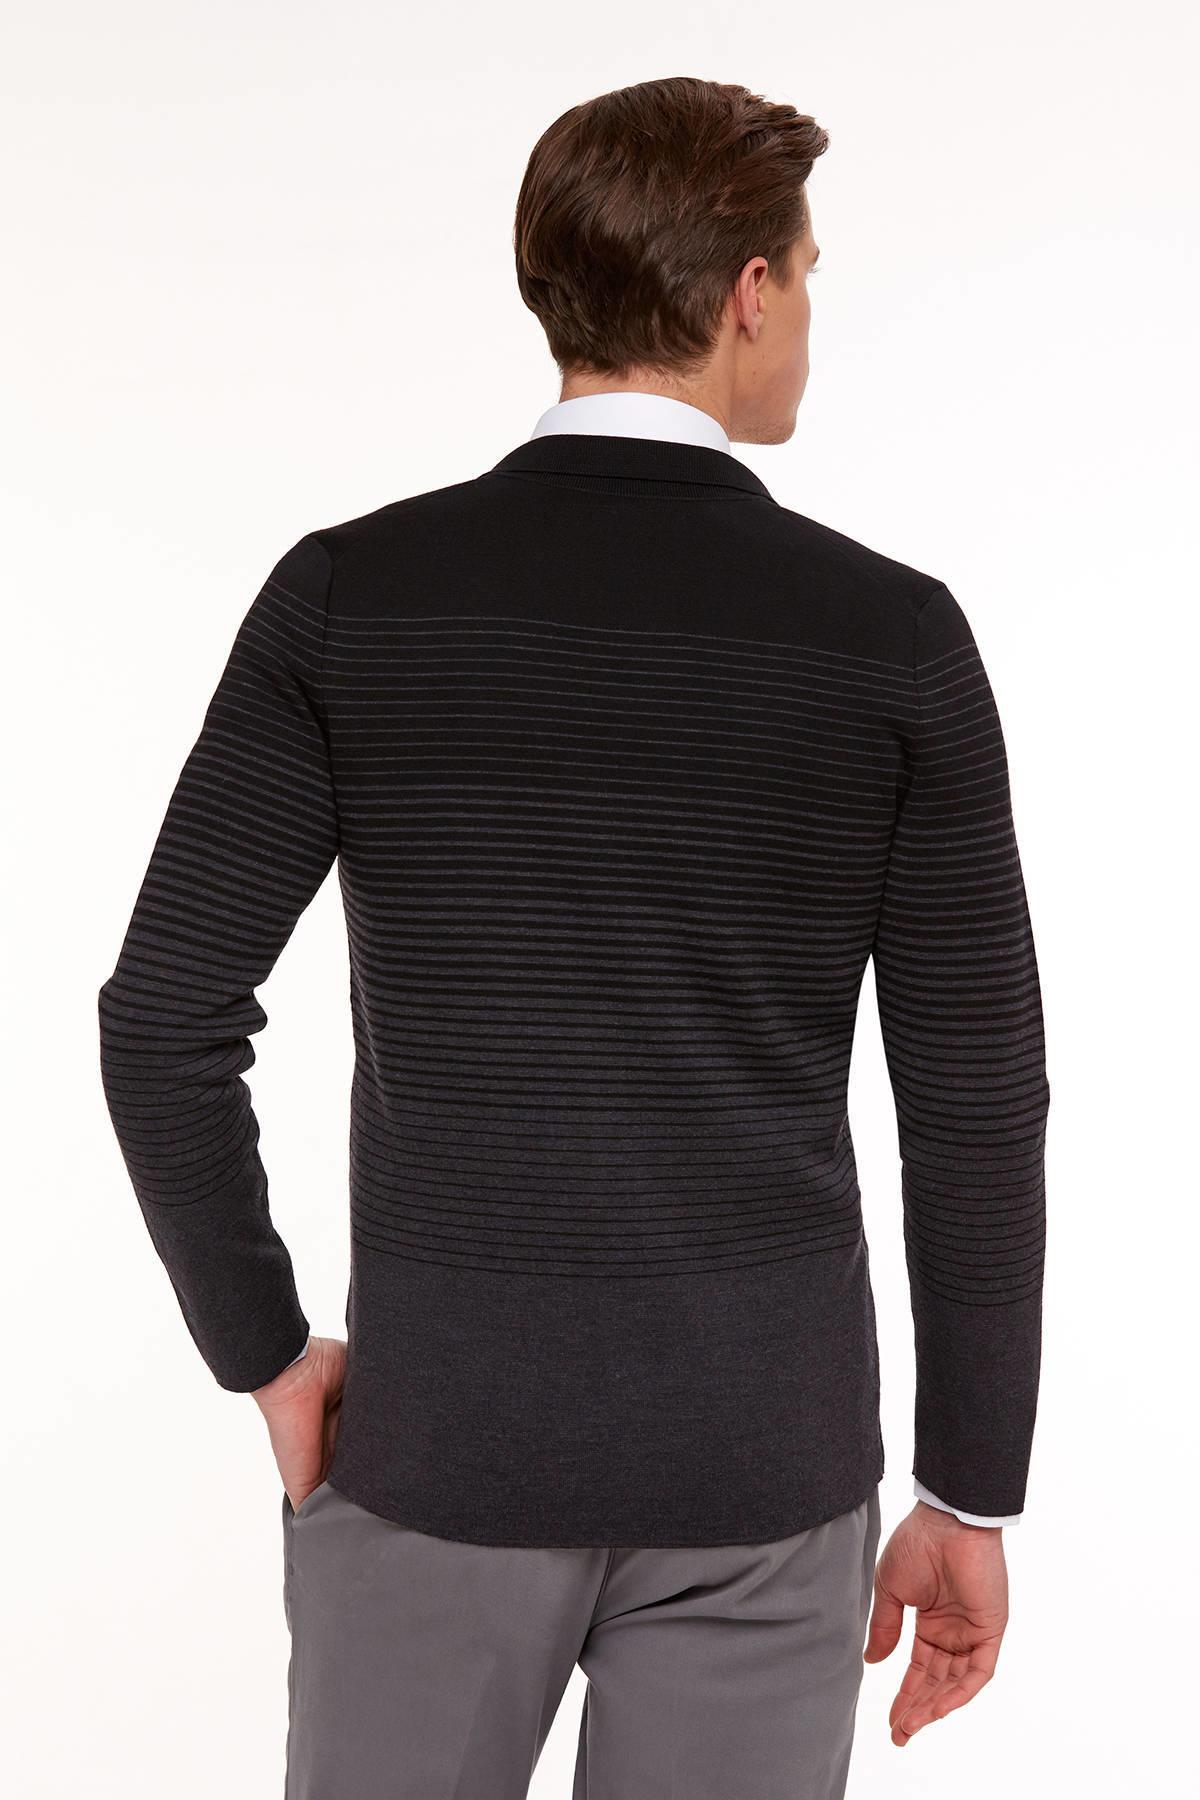 Extrafine Merino Slim Fit Degrade Antrasit Triko Ceket